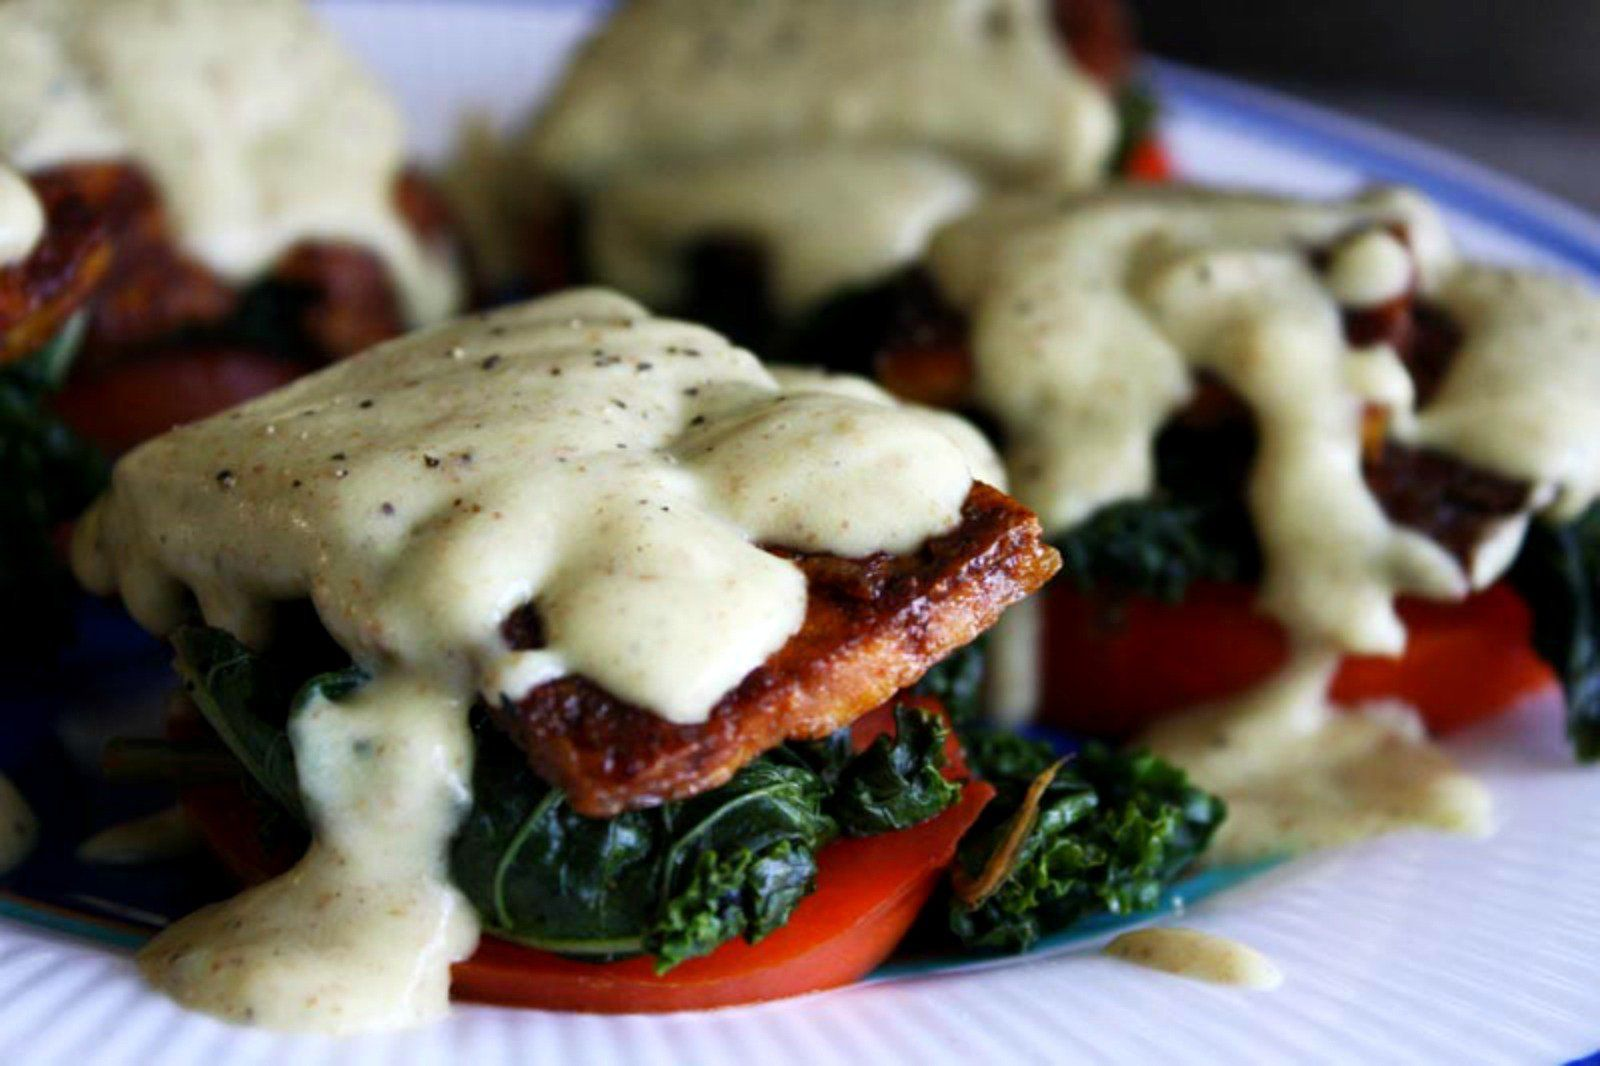 Tofu can be a little boring at times, but it is actually a pretty smart (and tasty!) vehicle for your meals when you know what to do with it. Made from whole soybeans, it's also healthier than many veggie burgers and soy protein powders. Here's some creative ways to up the flavor a bit more in your dishes!